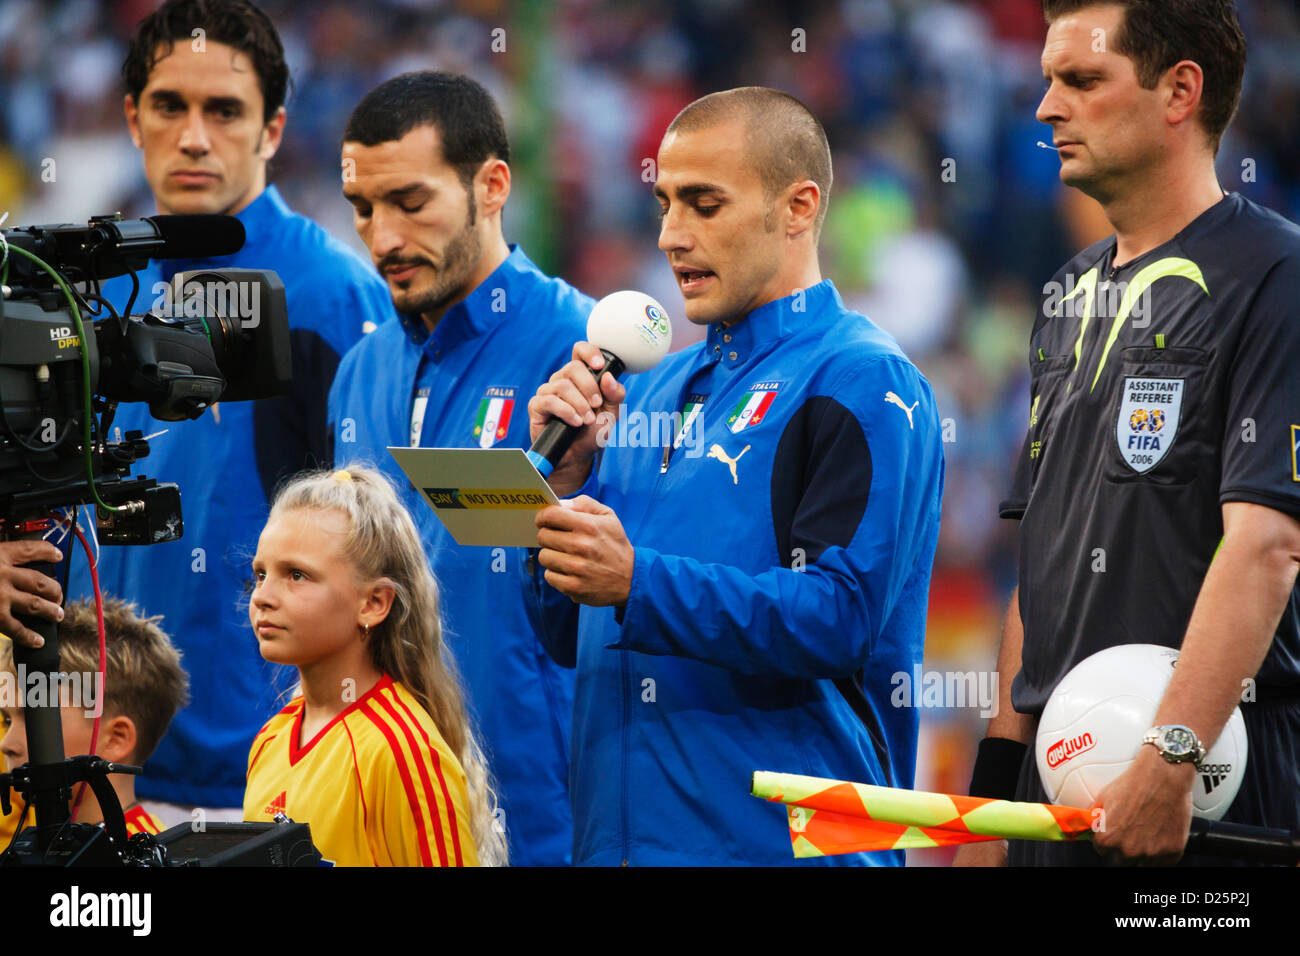 Italy team captain Fabio Cannavaro reads a statement as part of an anti-racism campaign before a FIFA World Cup - Stock Image